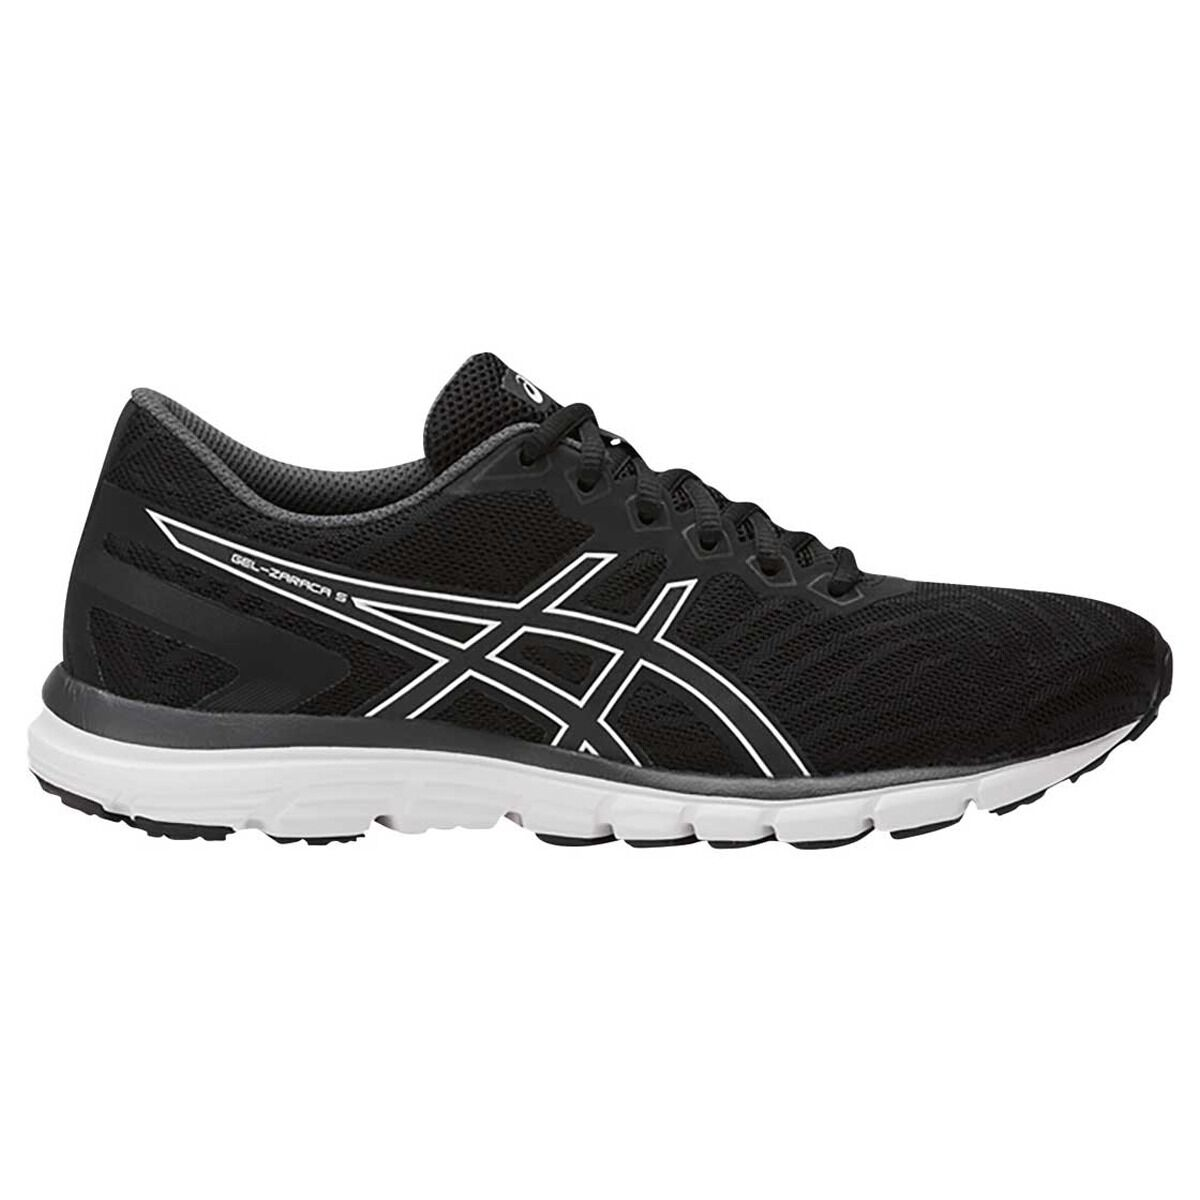 Asics Gel Zaraca 5 Womens Running Shoes Black / Grey US 9.5